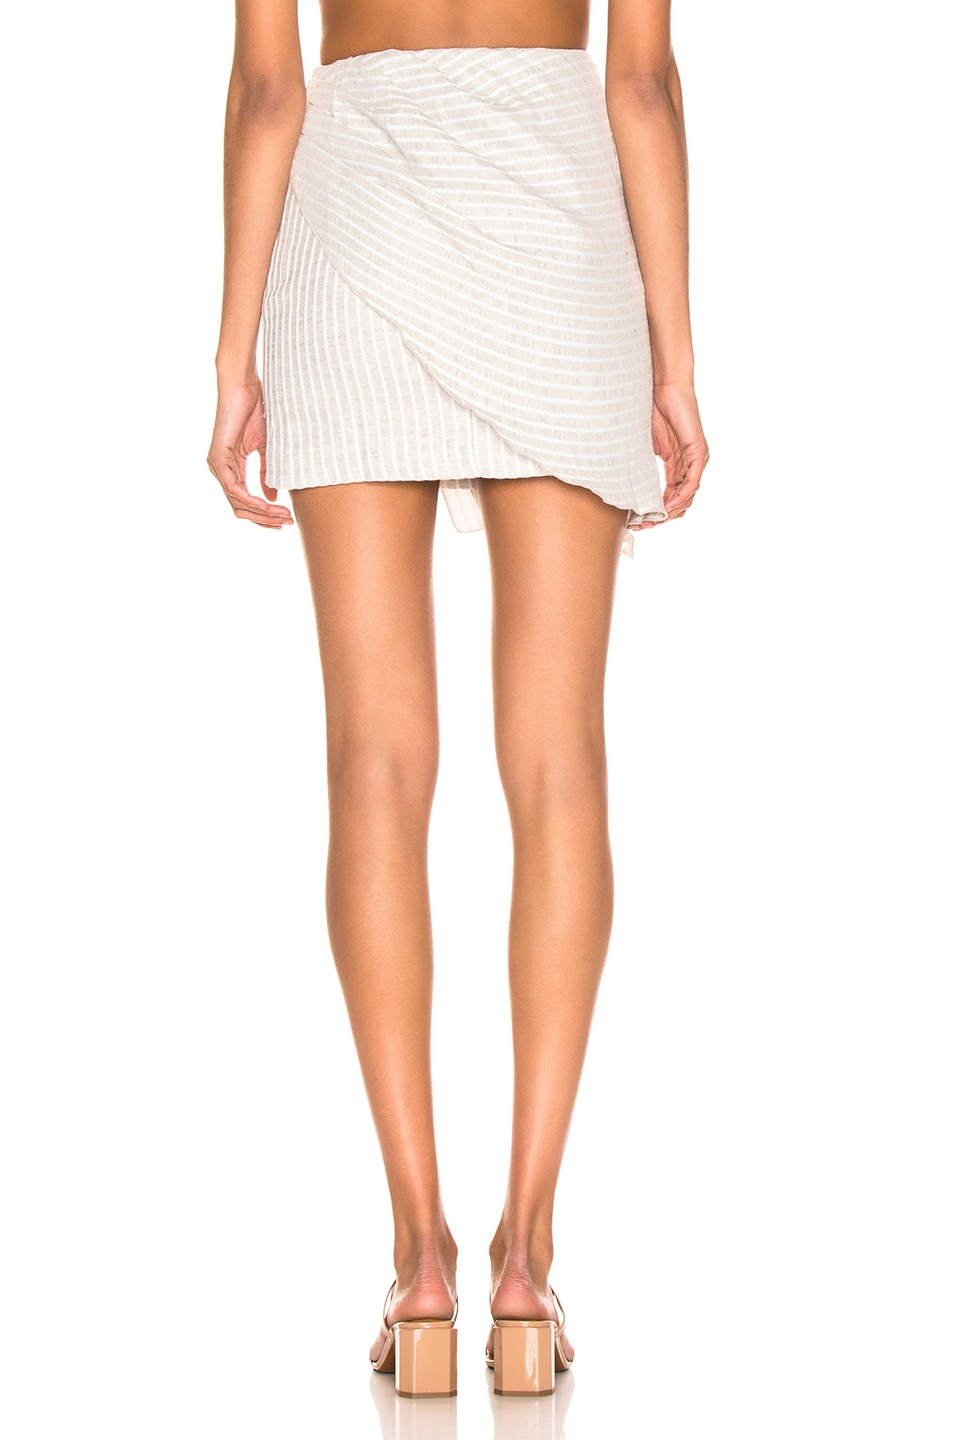 Image 4 of Atoir Be With You Skirt in Grey & White Stripe